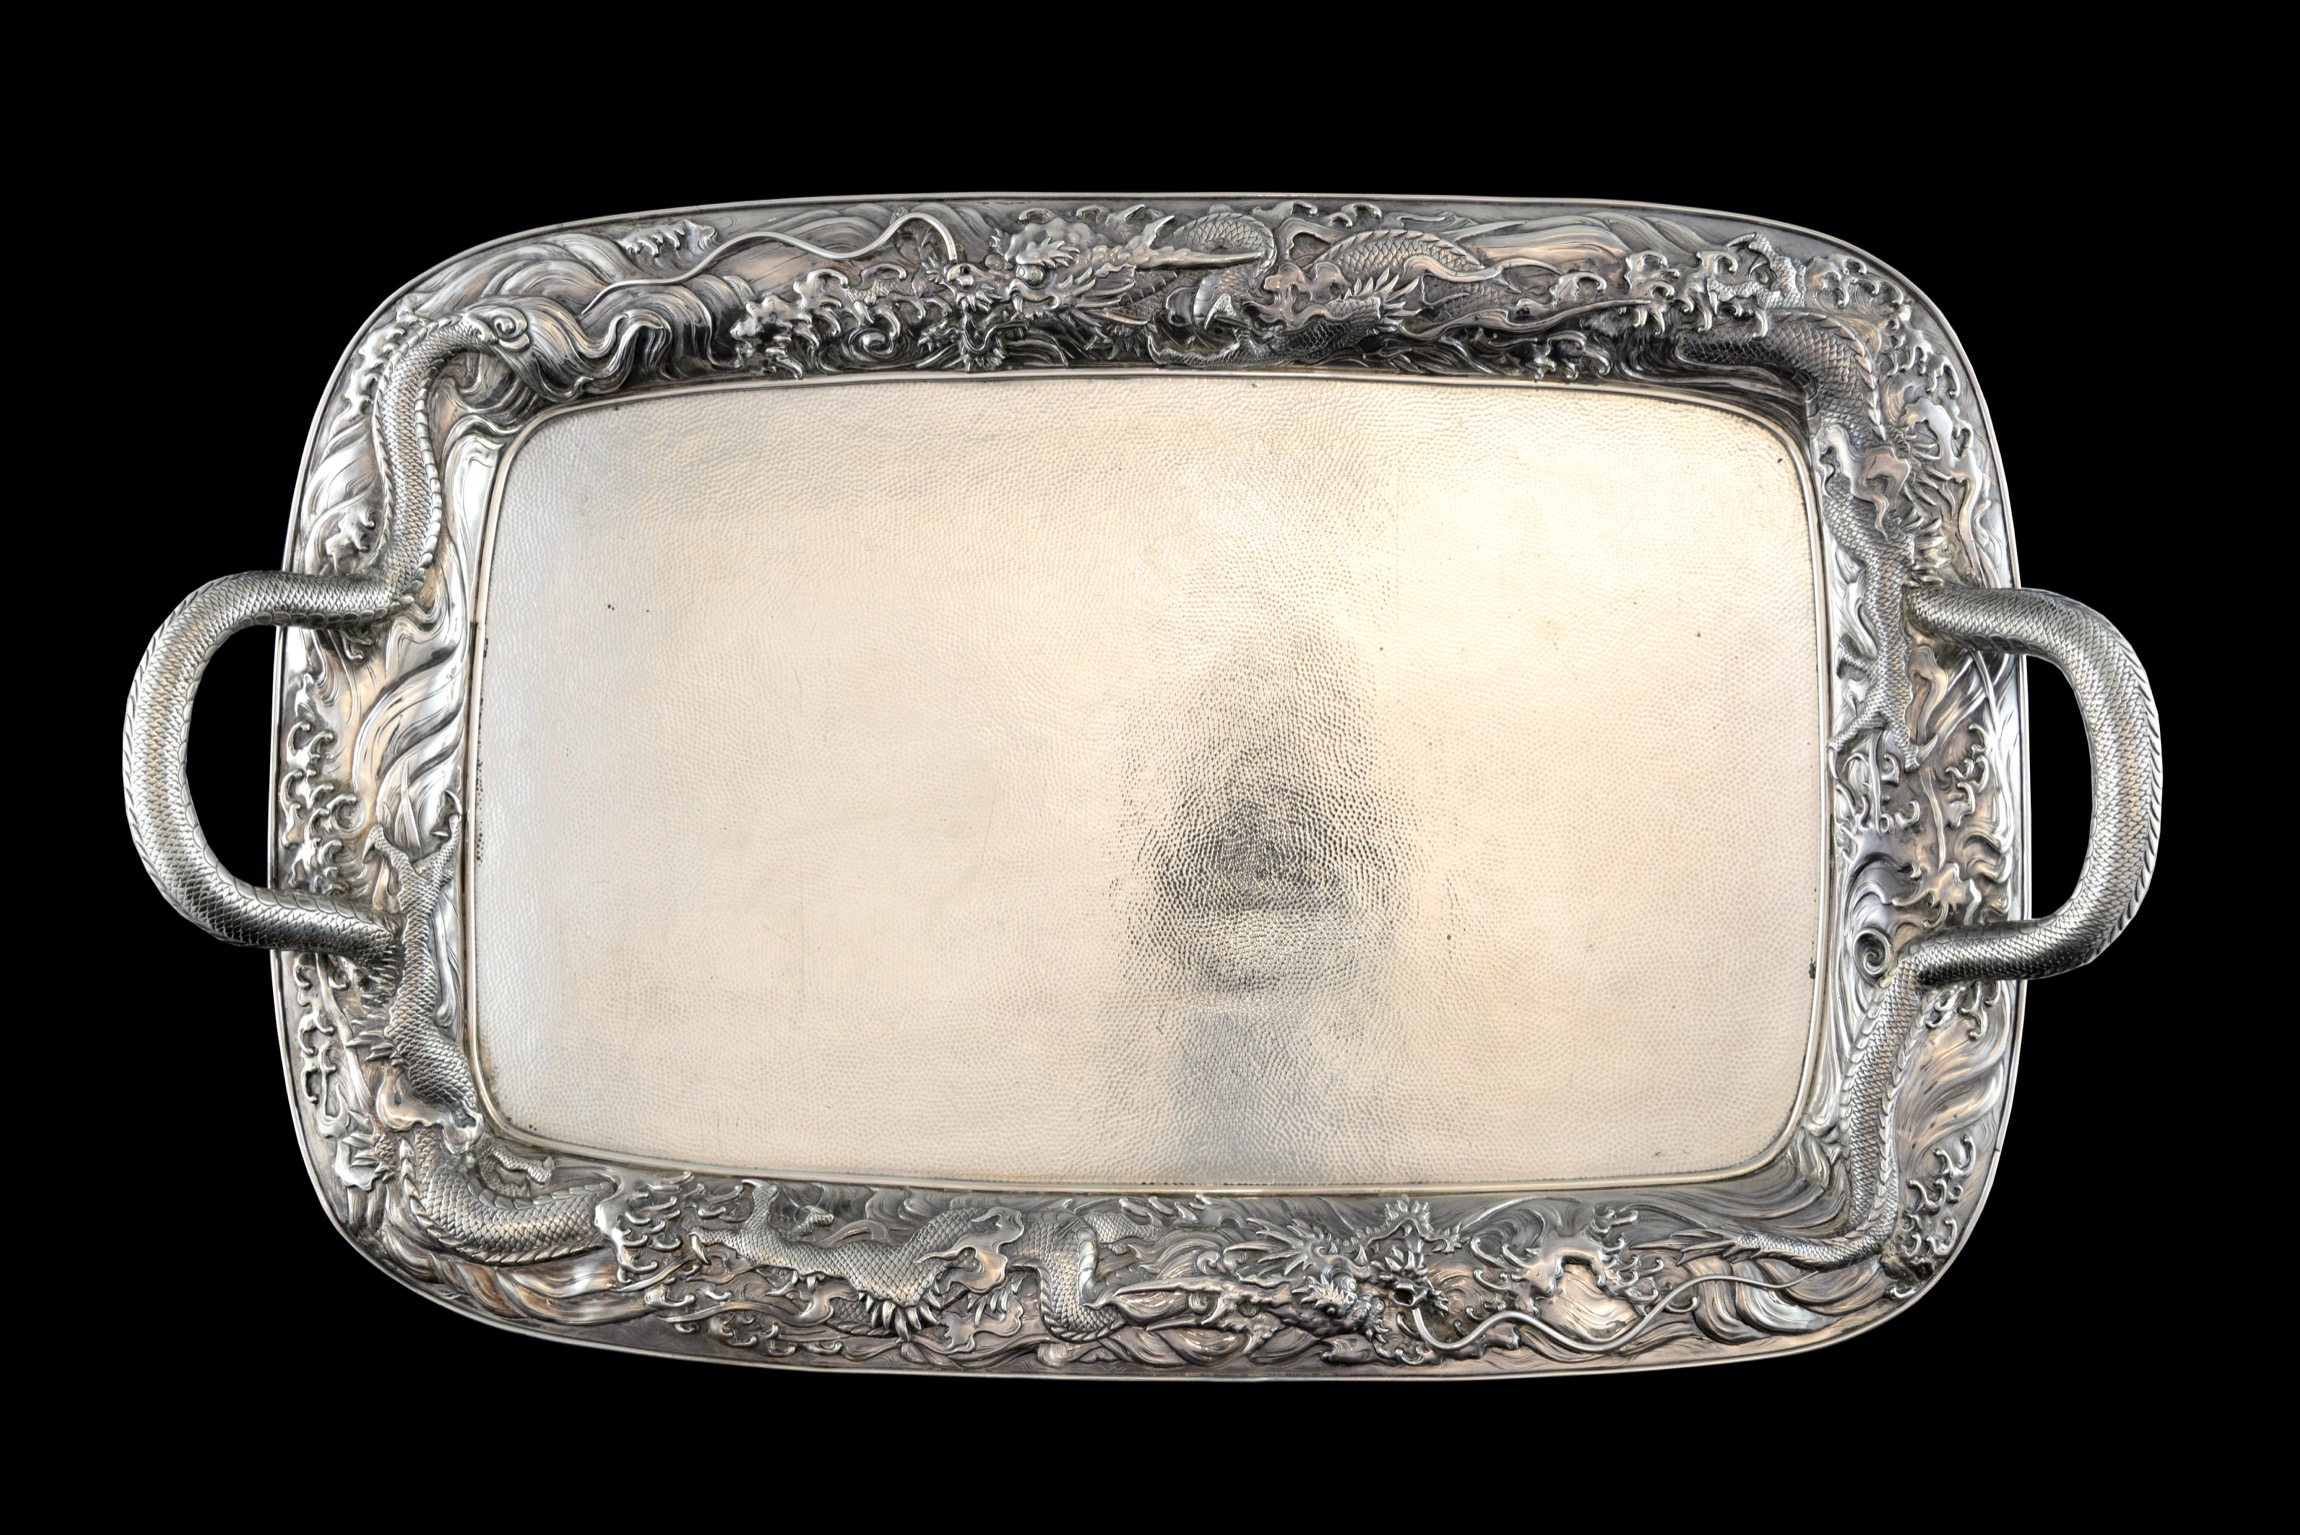 Japanese Meiji period silver twin-handled tray